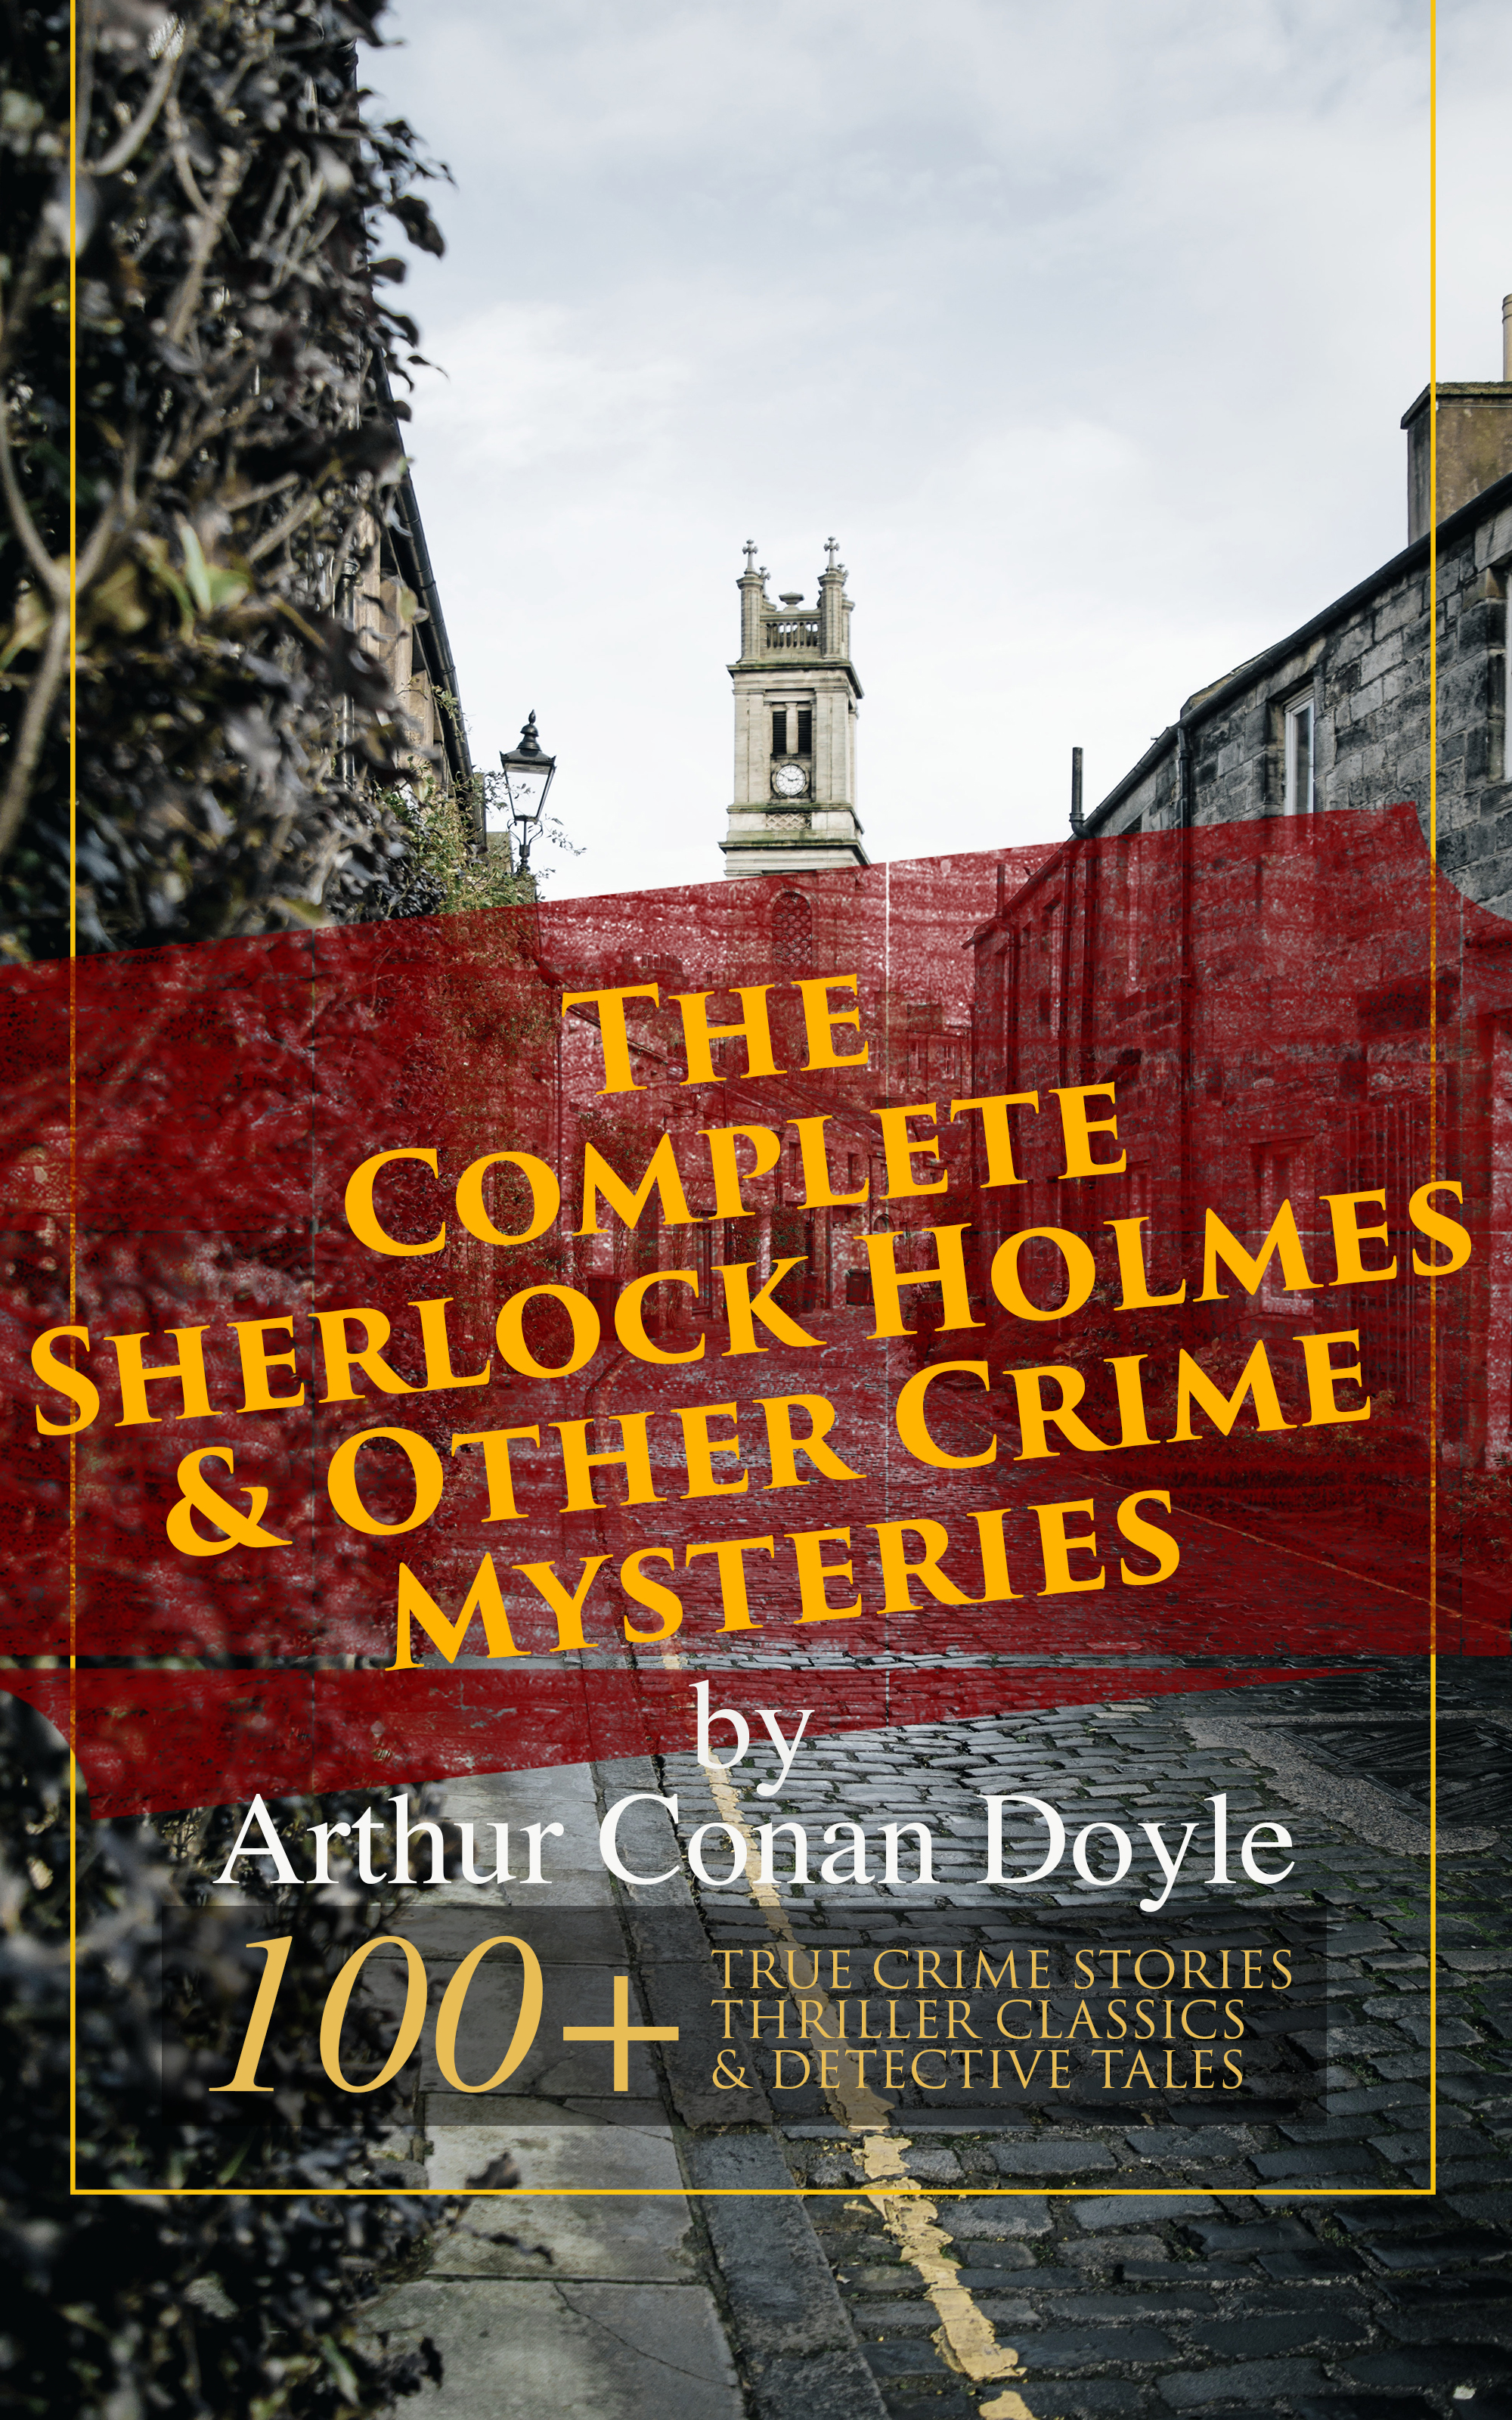 цены Arthur Conan Doyle The Complete Sherlock Holmes & Other Crime Mysteries by Arthur Conan Doyle: